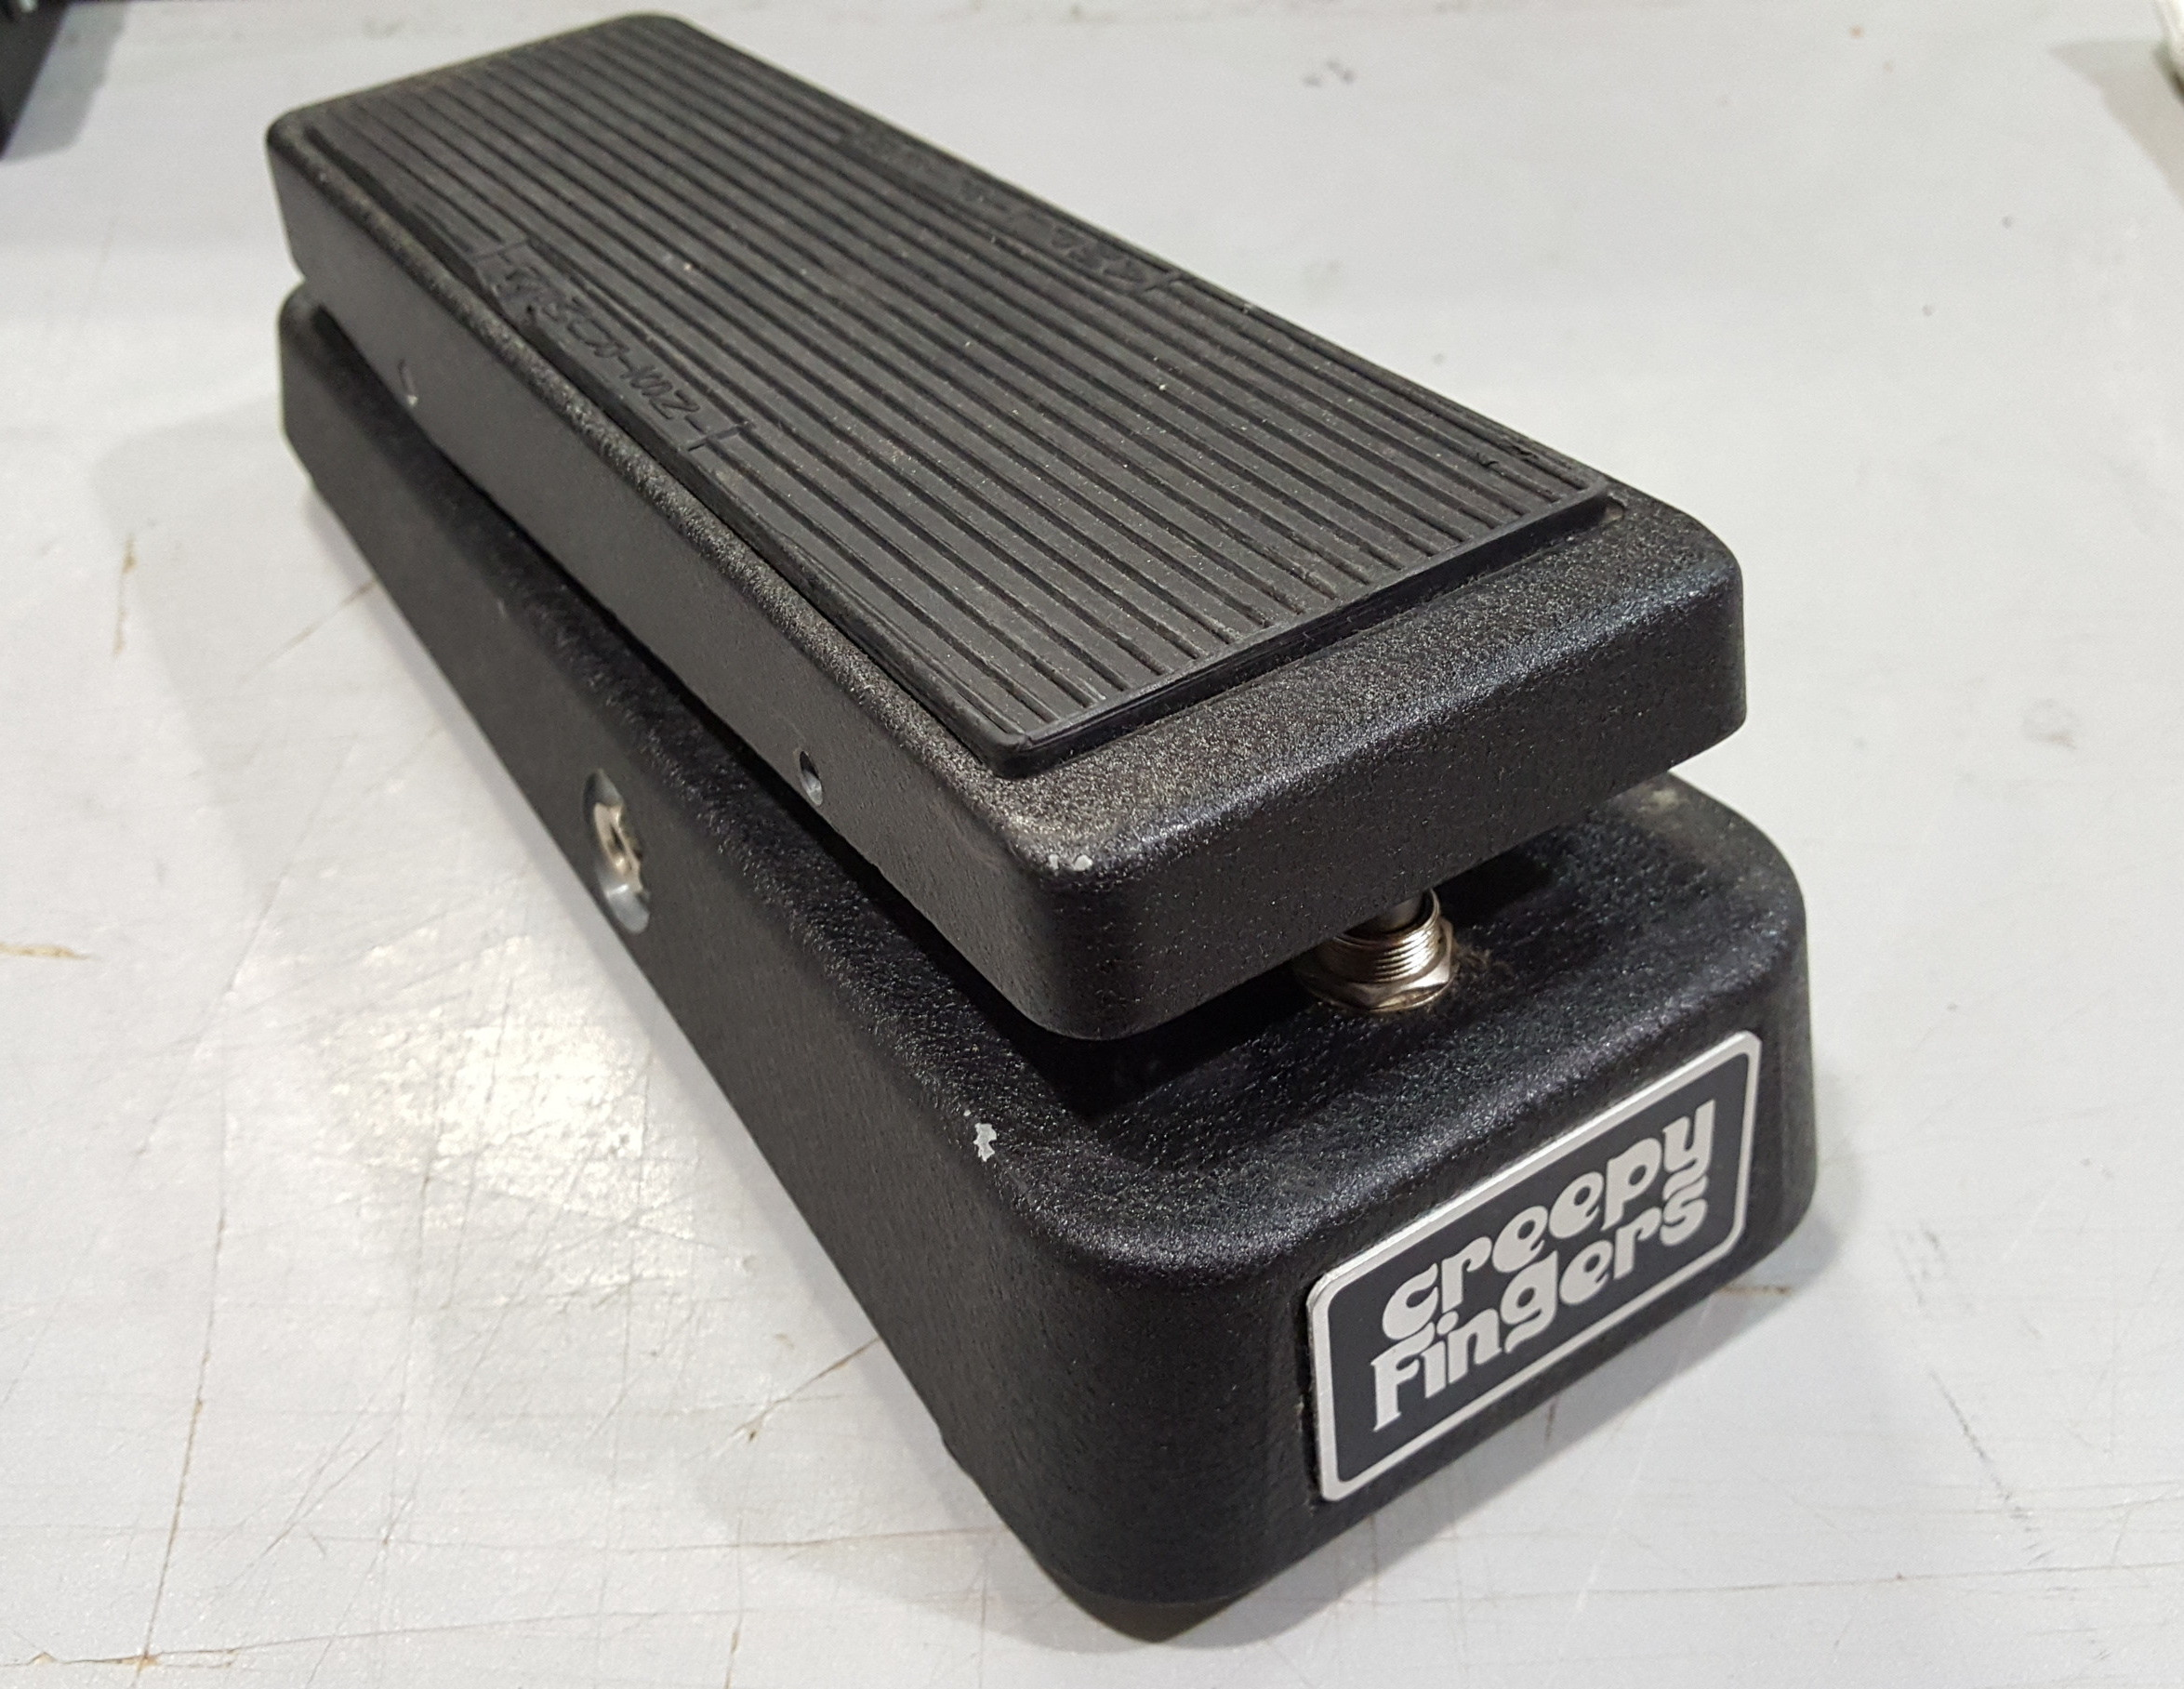 DUNLOP CREEPY FINGERS MODDED CRYBABY WAH PEDAL